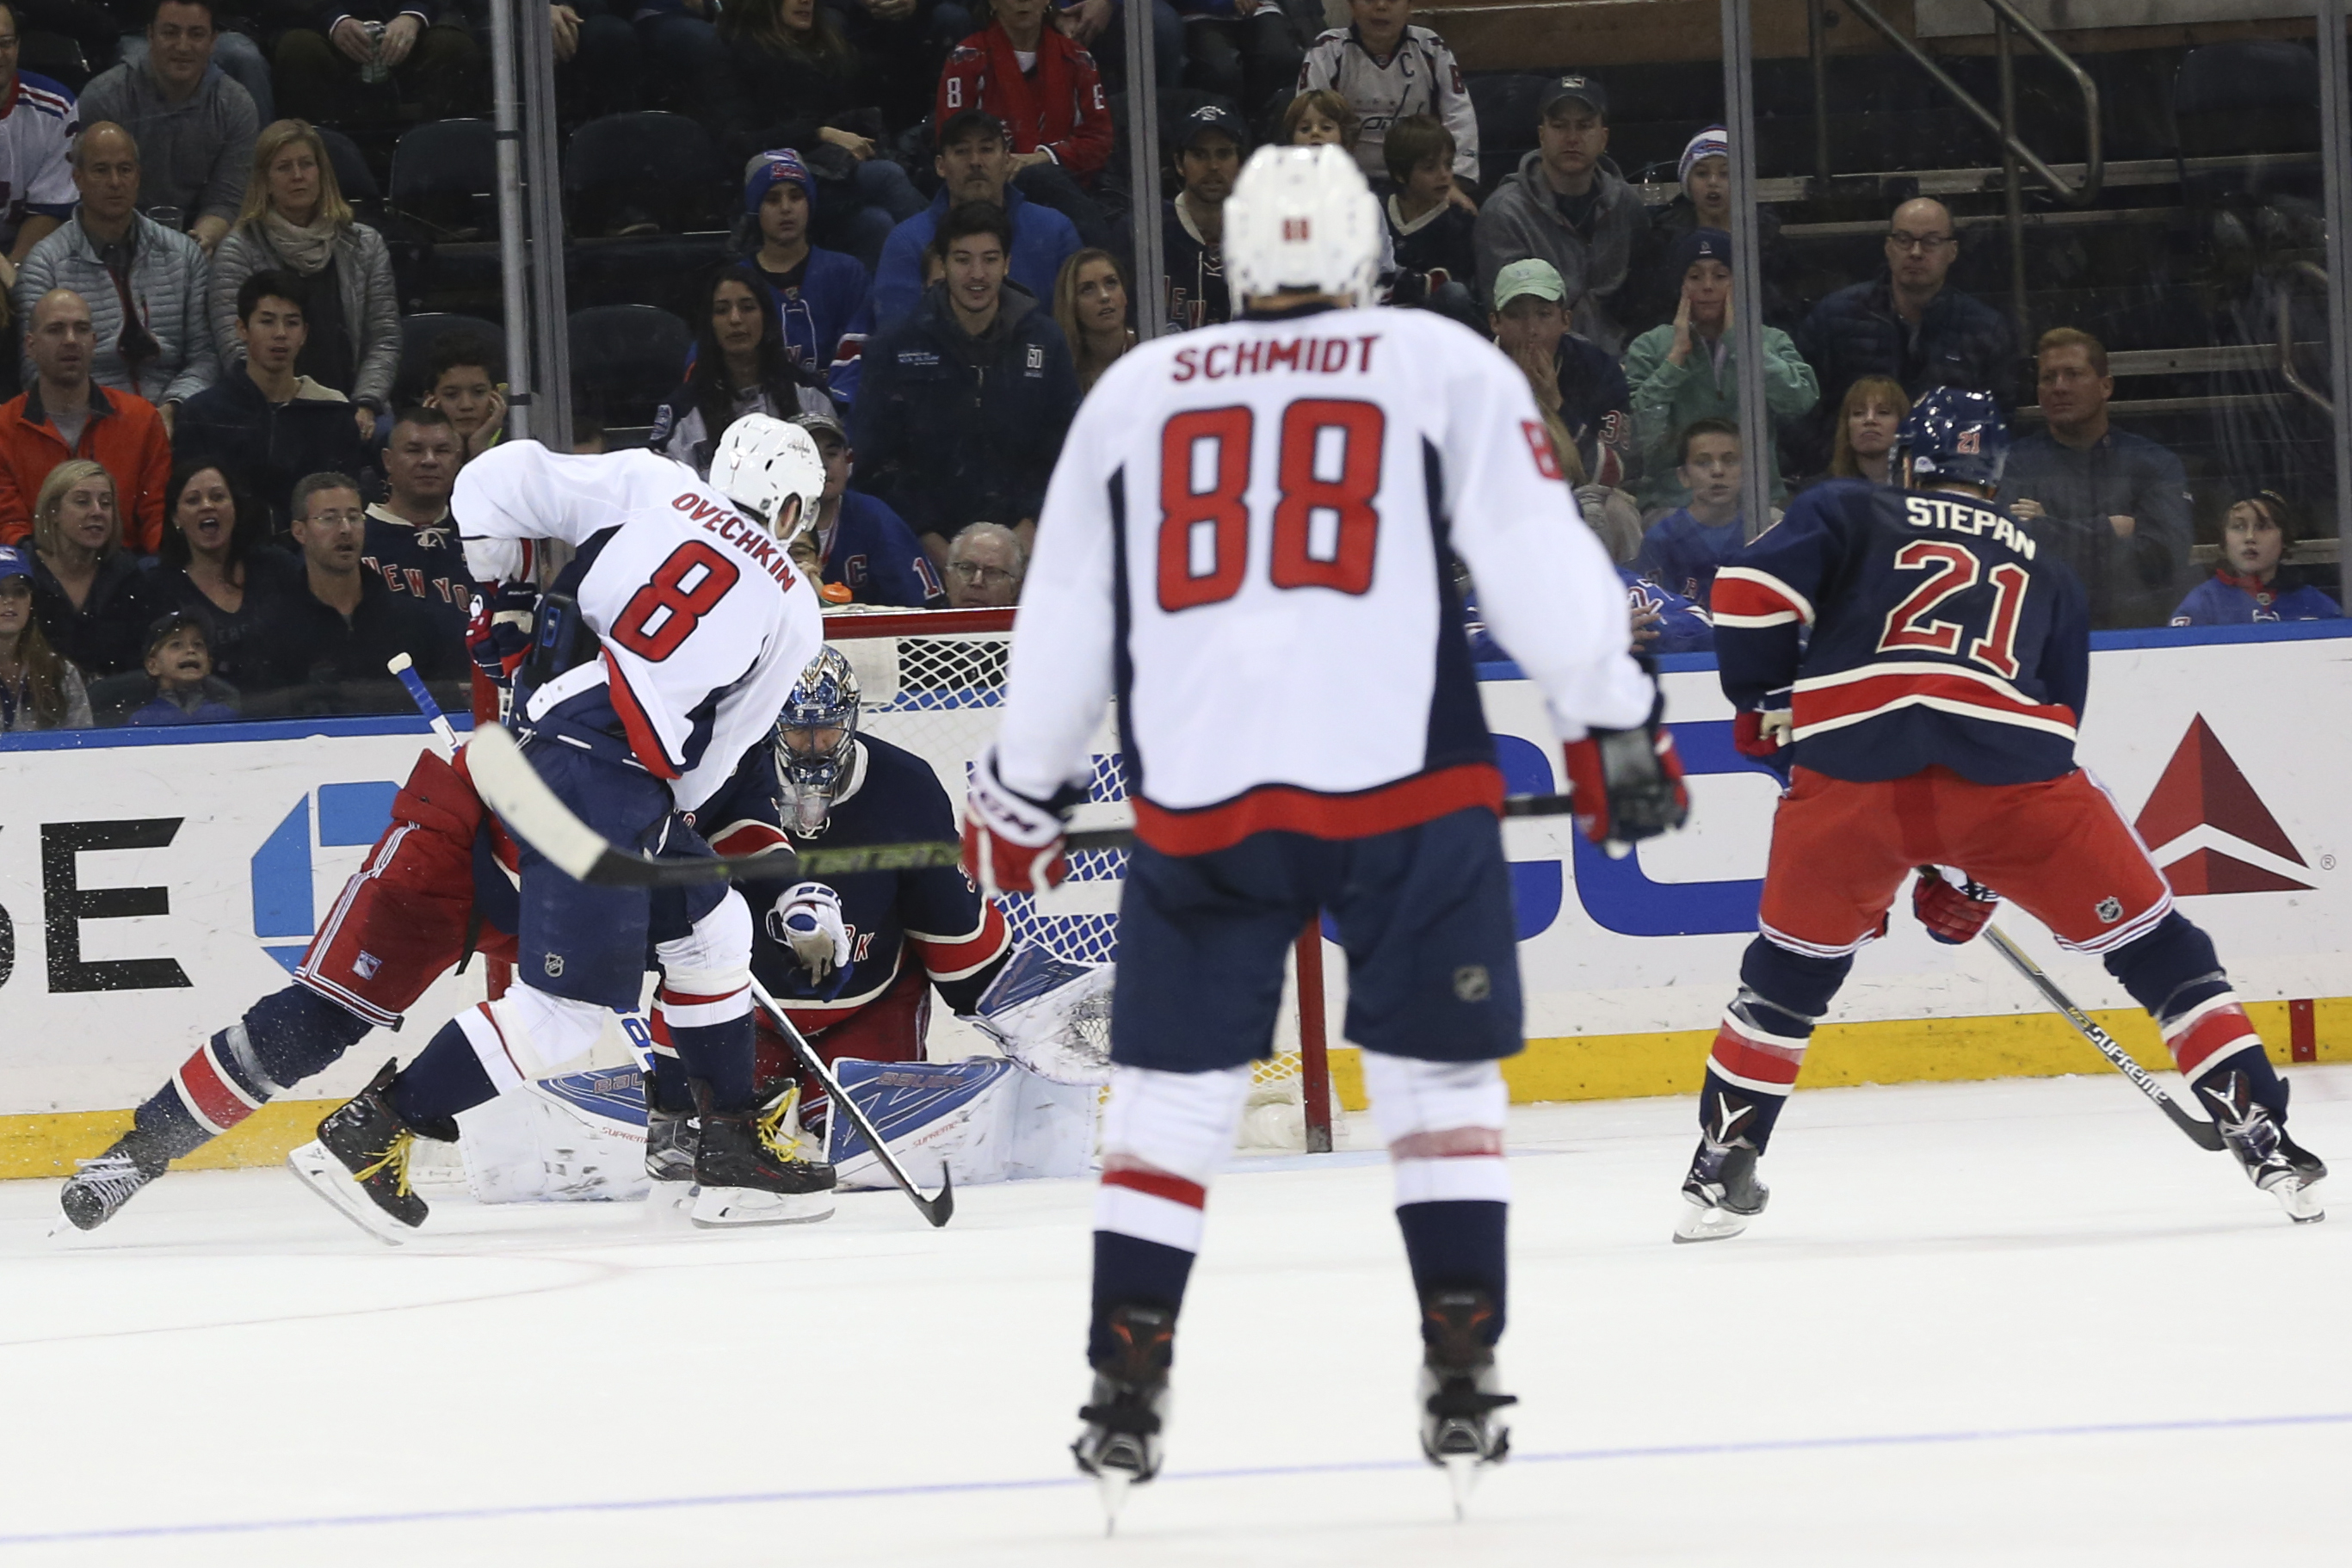 Washington Capitals left wing Alex Ovechkin (8) scores the winning goal during overtime of an NHL hockey game against the New York Rangers, Saturday, Jan. 9, 2016, at Madison Square Garden in New York. The Capitals won 4-3. (AP Photo/Mary Altaffer)